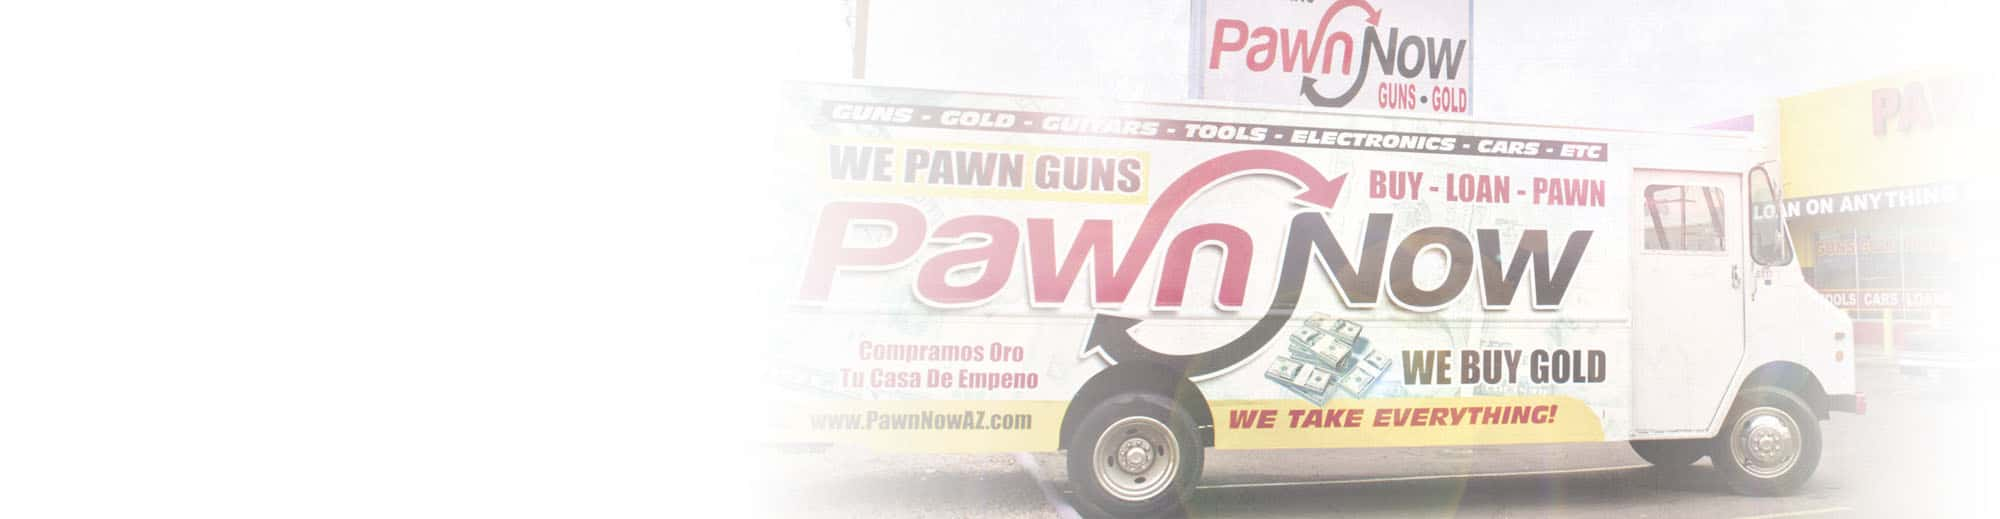 Pawn Now in Arizona, With Pawn Shops in Mesa, Scottsdale, Phoenix Pawn shops and Chandler pawn stores.